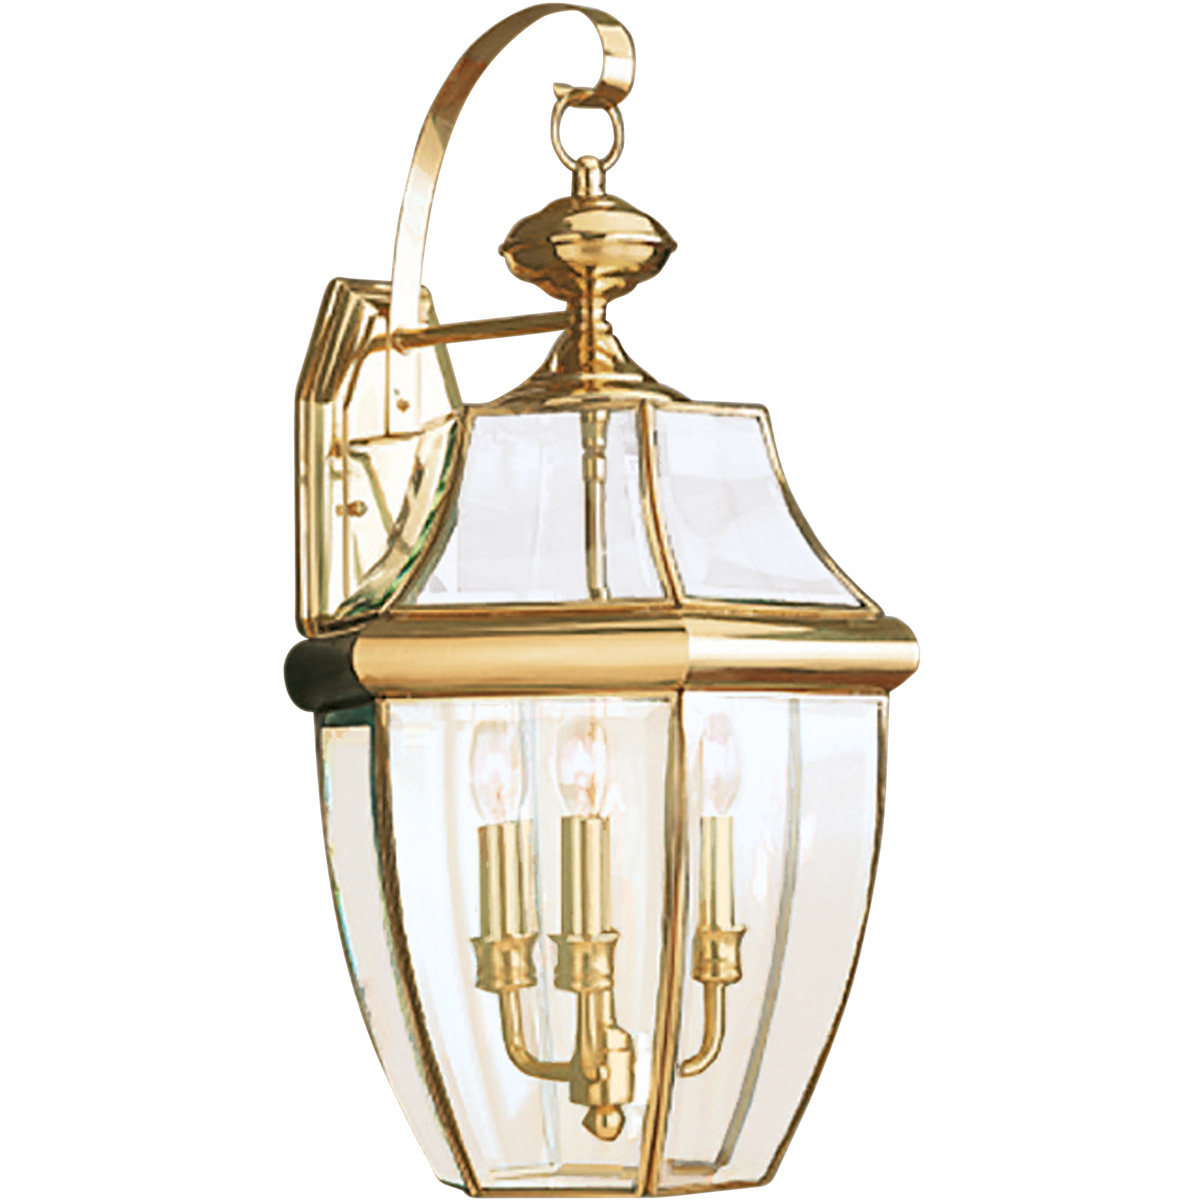 Sea Gull Lighting Lancaster 3 Light Outdoor Wall Lantern in Polished Brass 8040-02